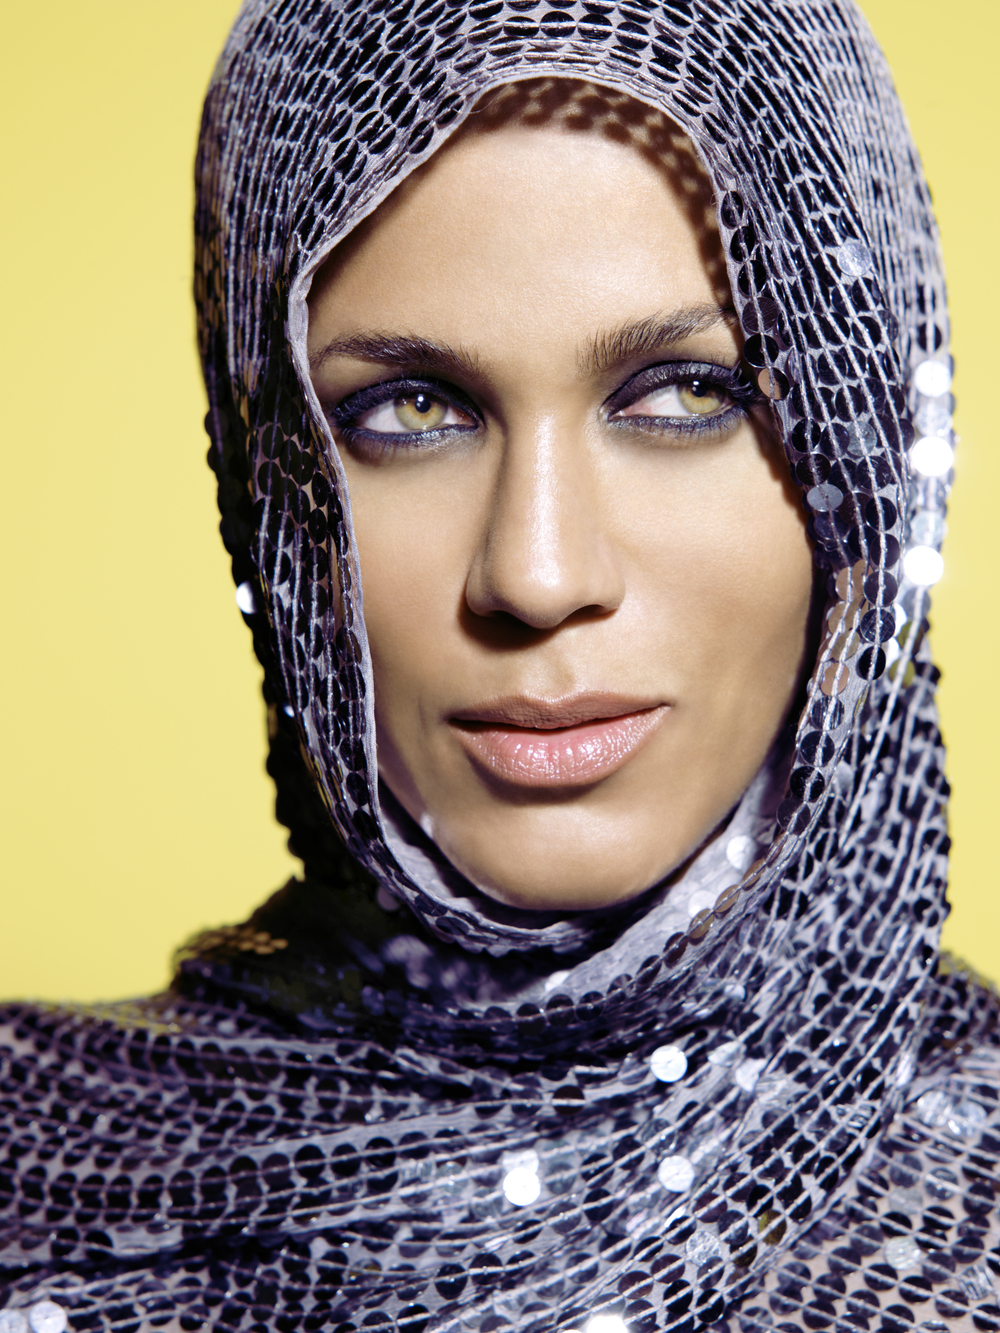 Nicole Ari Parker photographed by Keith Major